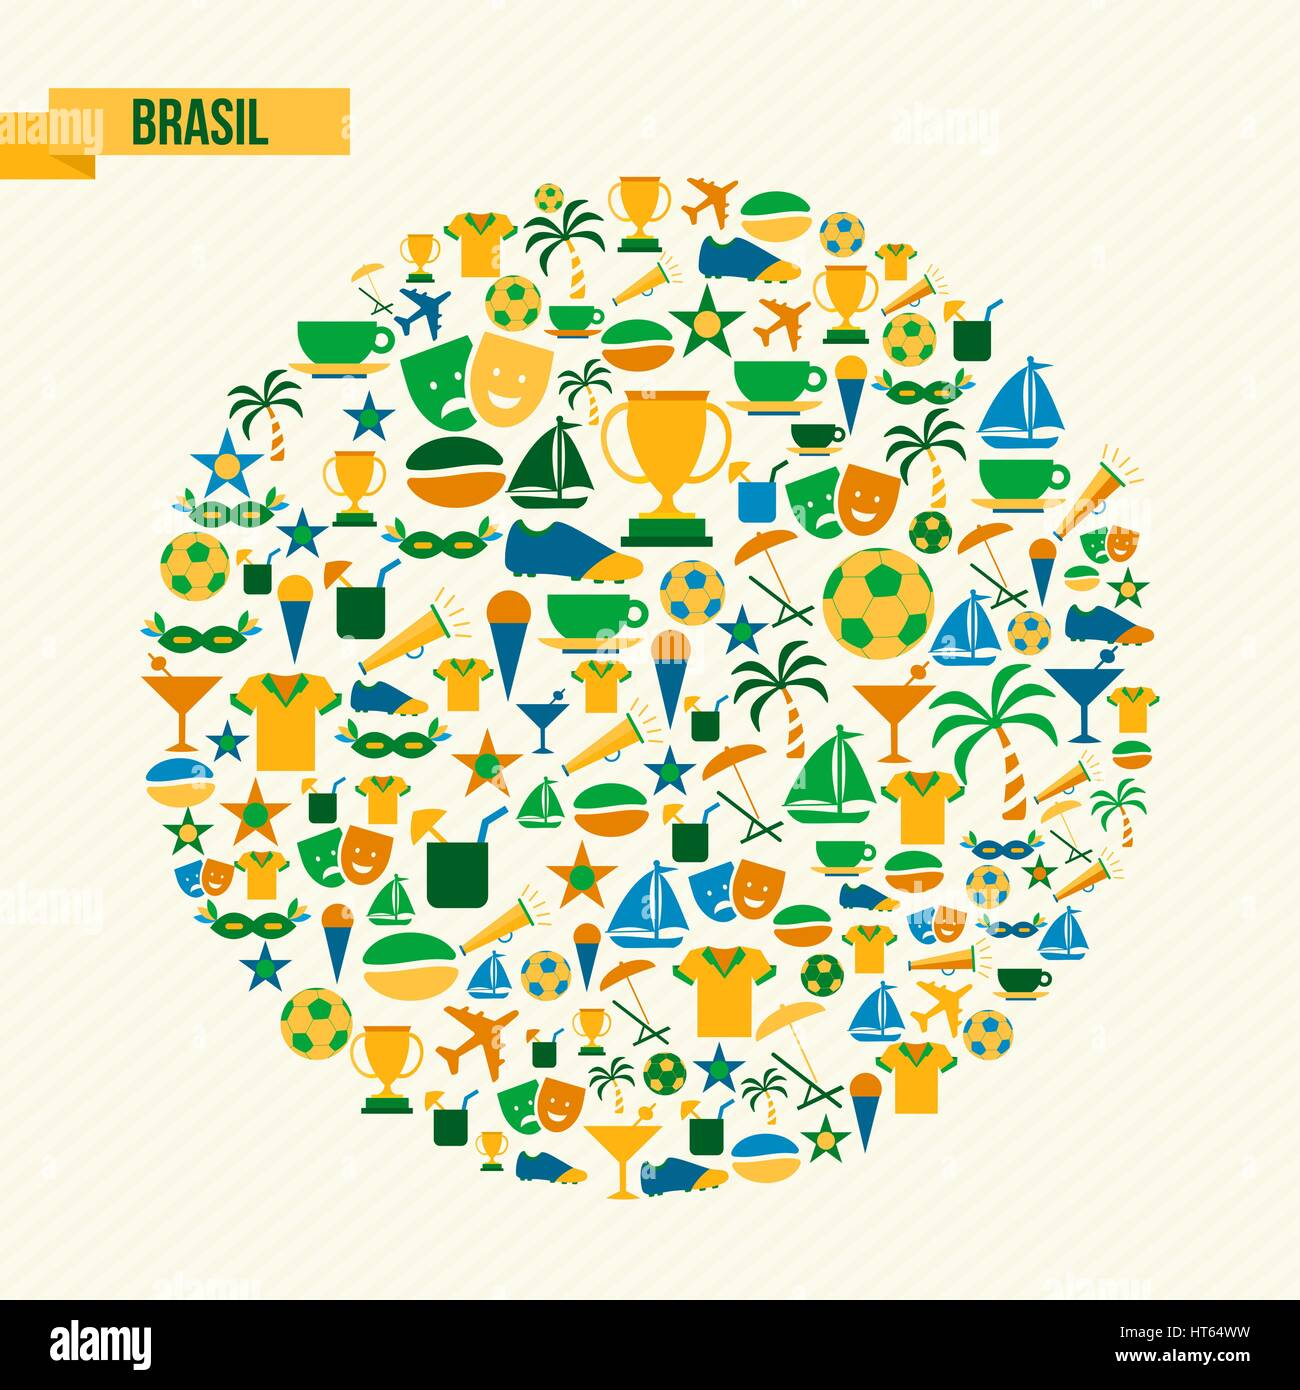 brasil culture The culture of brazil is very diverse, due to the ethnic and cultural mixing that took place during the colonial period brazil was part of the portuguese empire for over 300 years, and therefore a lot of their culture is based on portuguese culture.